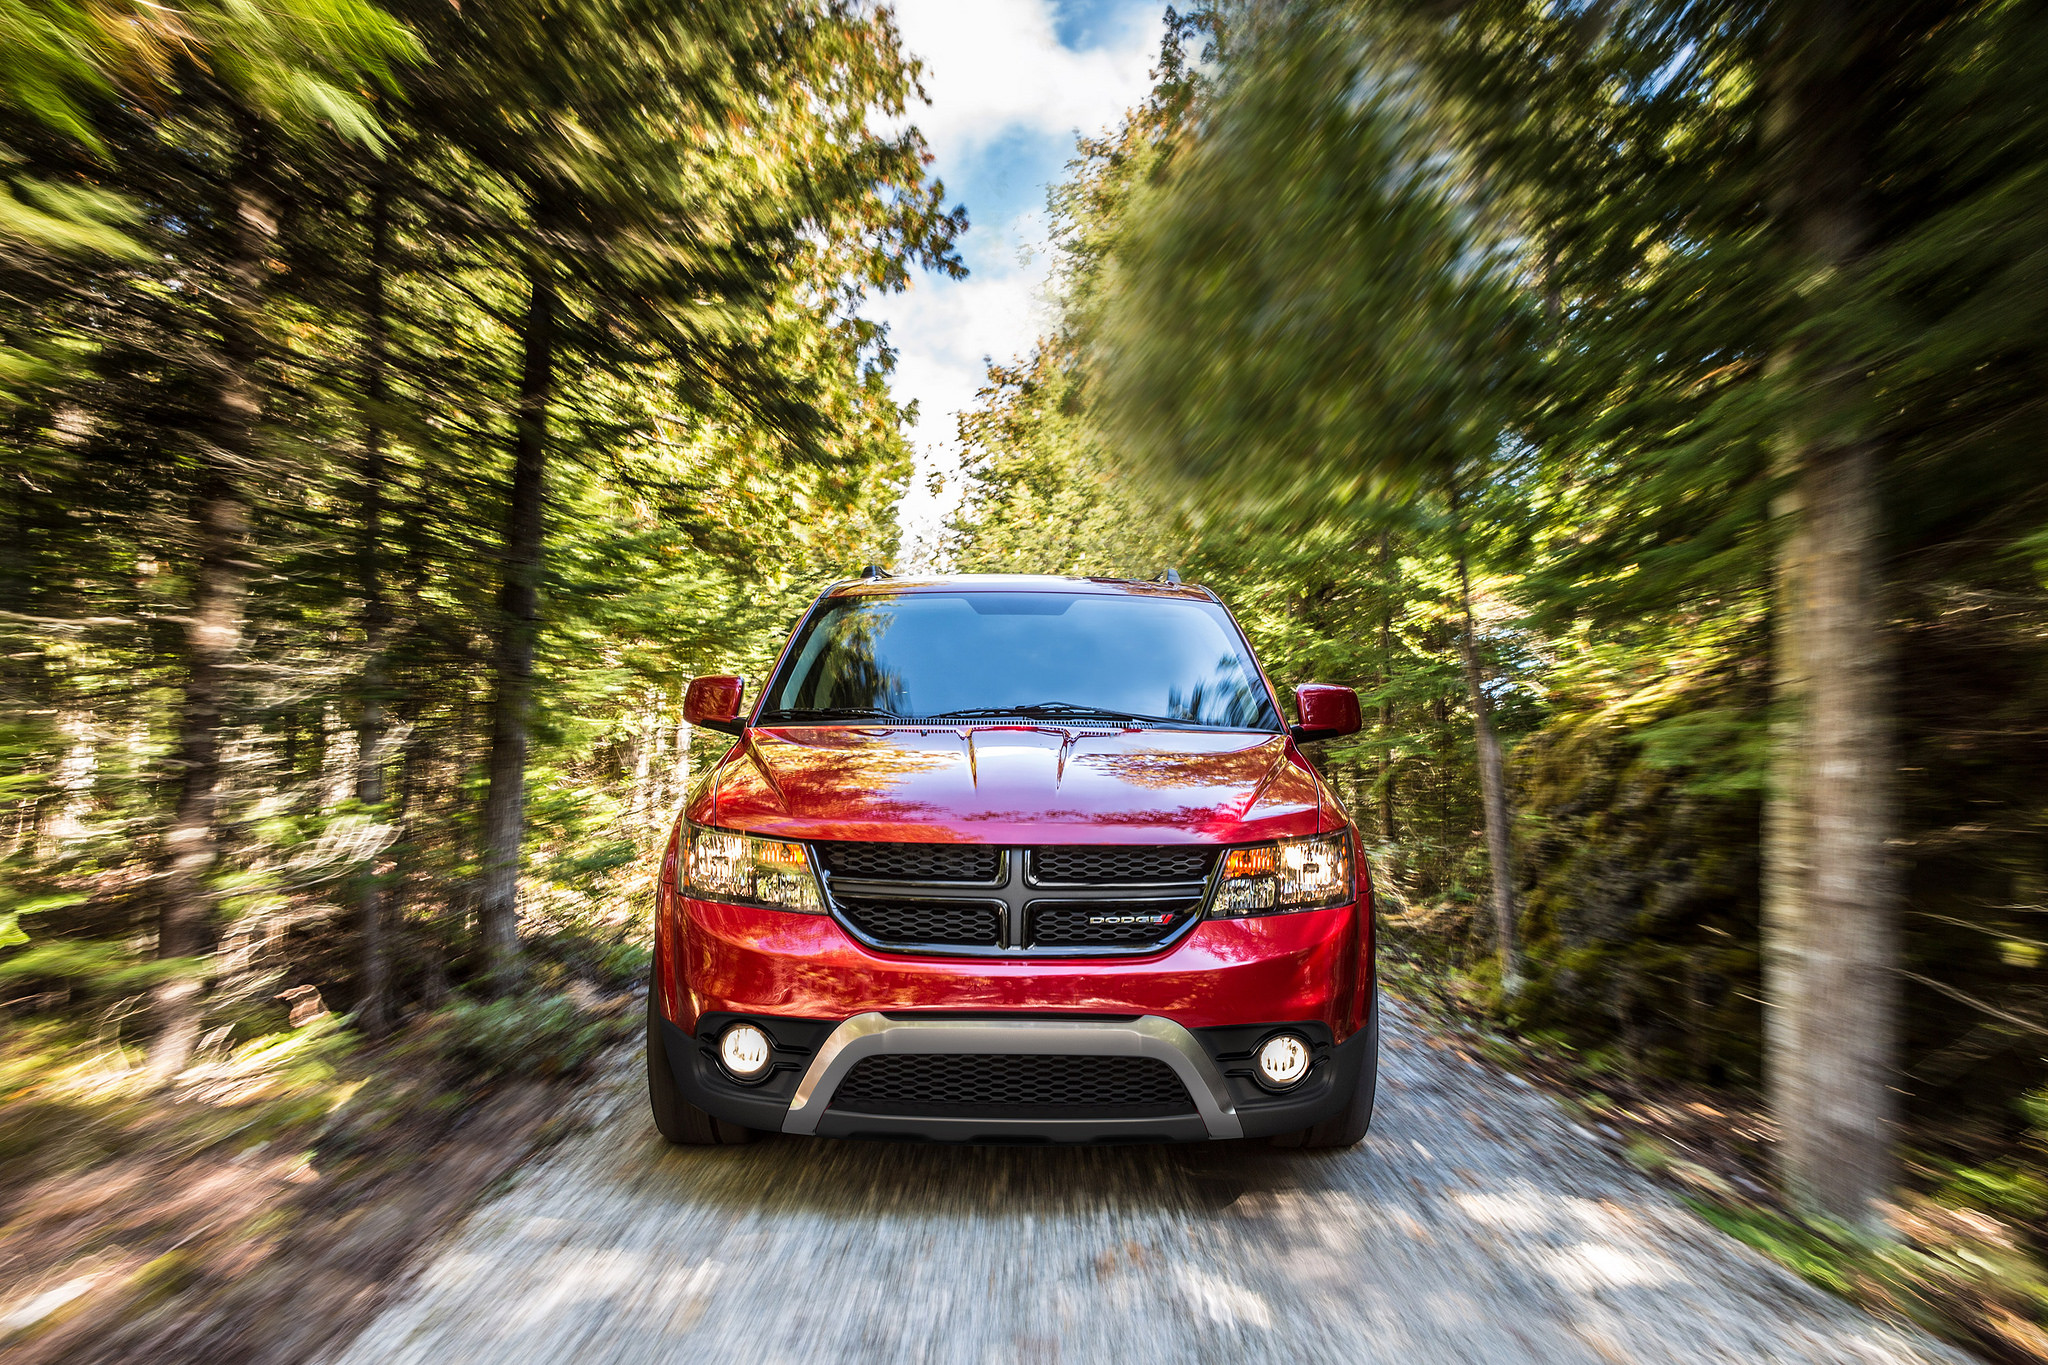 Two Wheel Motorsports >> 2018 Dodge Journey Overview - The News Wheel